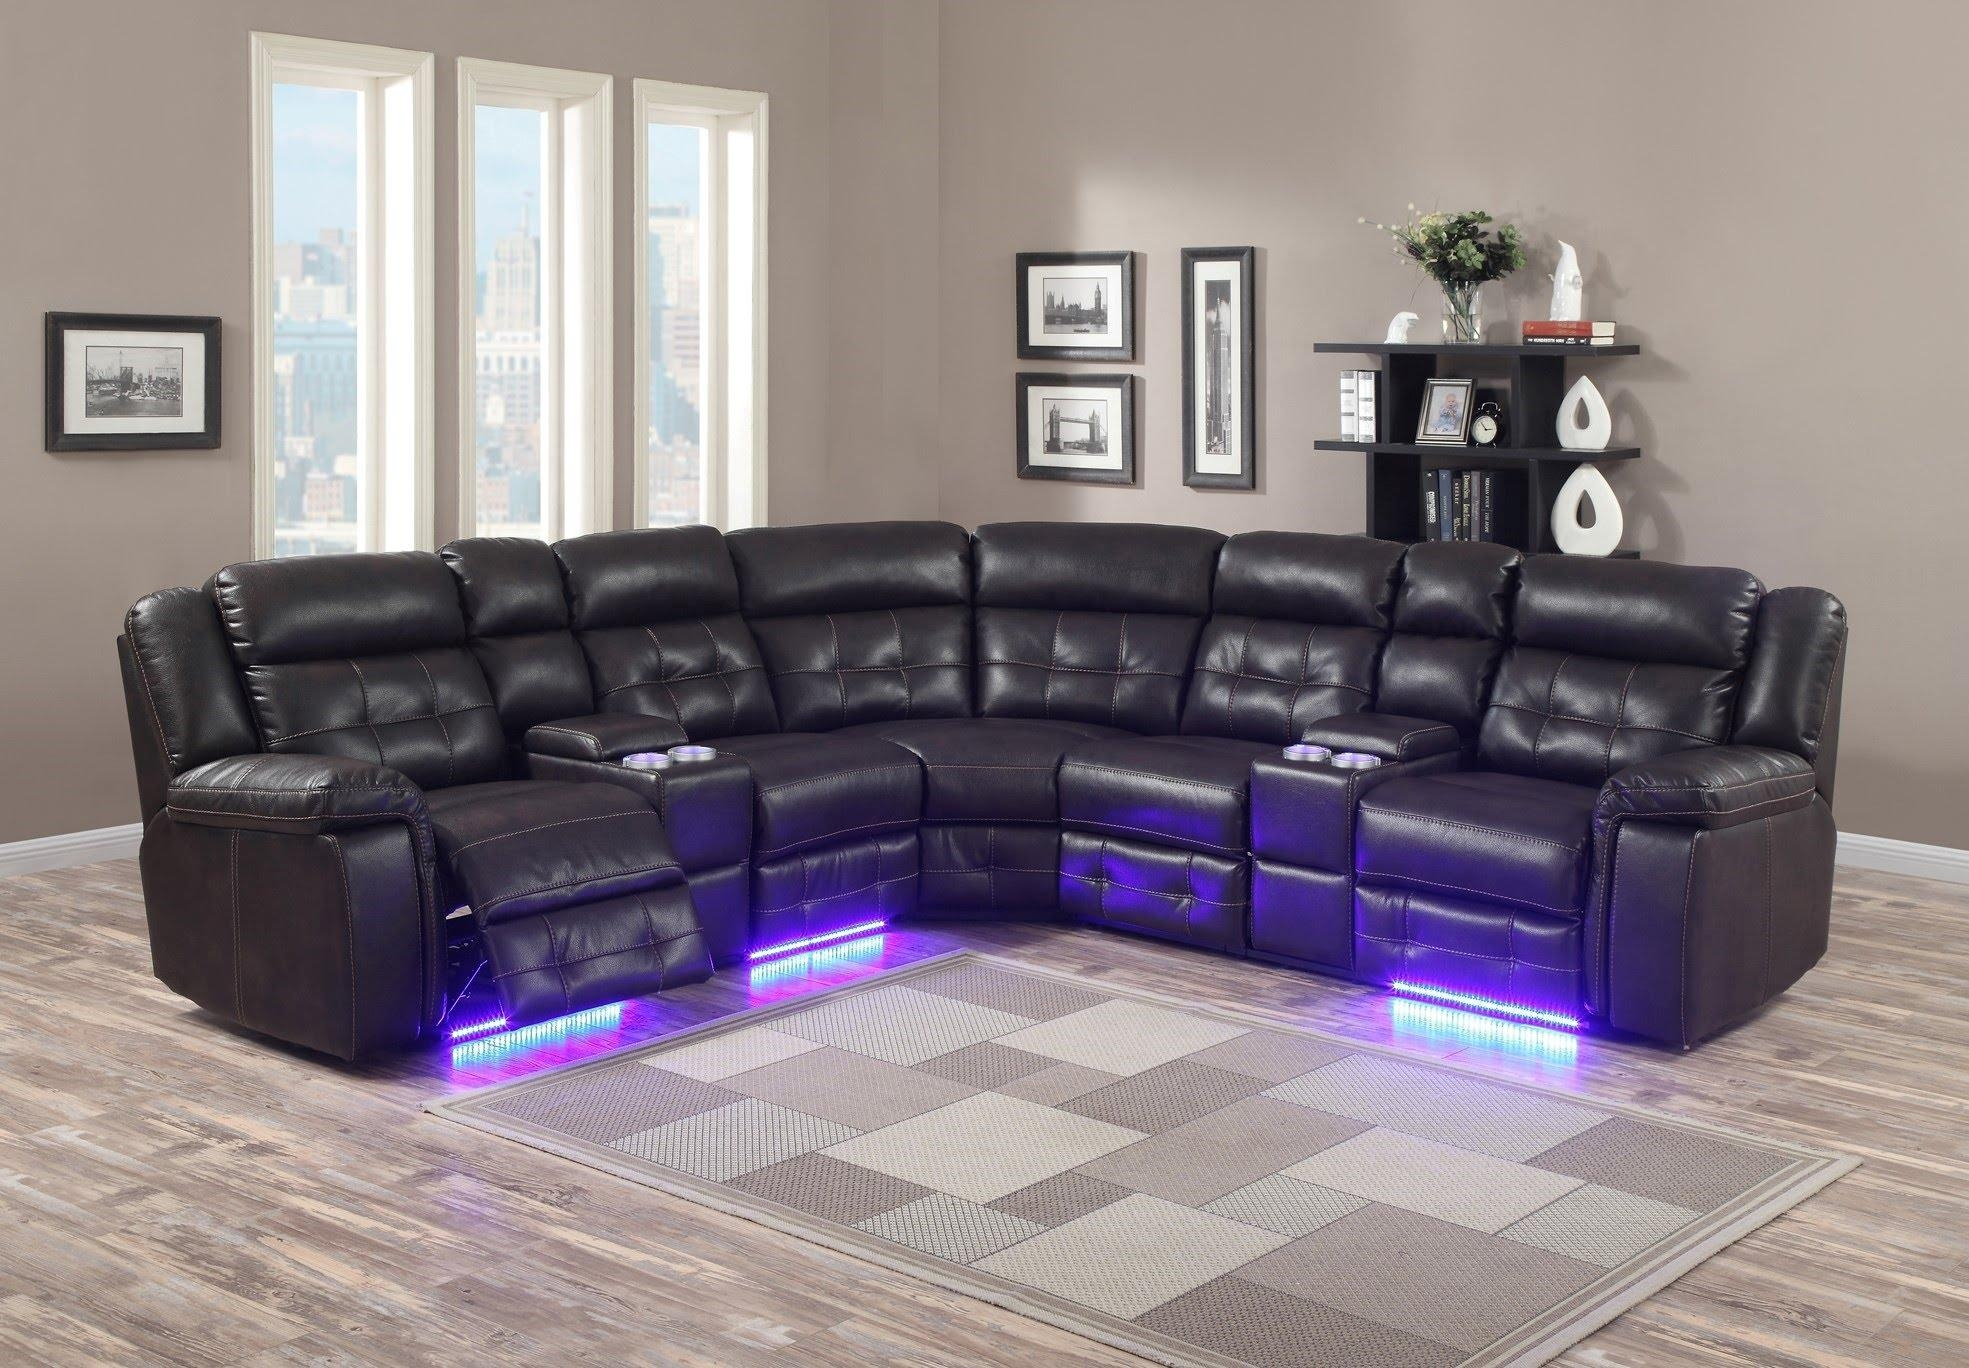 Living Room: Exciting Sofa Set For Sale Cheap Couch, Sofa Set Within Sofas With Lights (View 21 of 21)